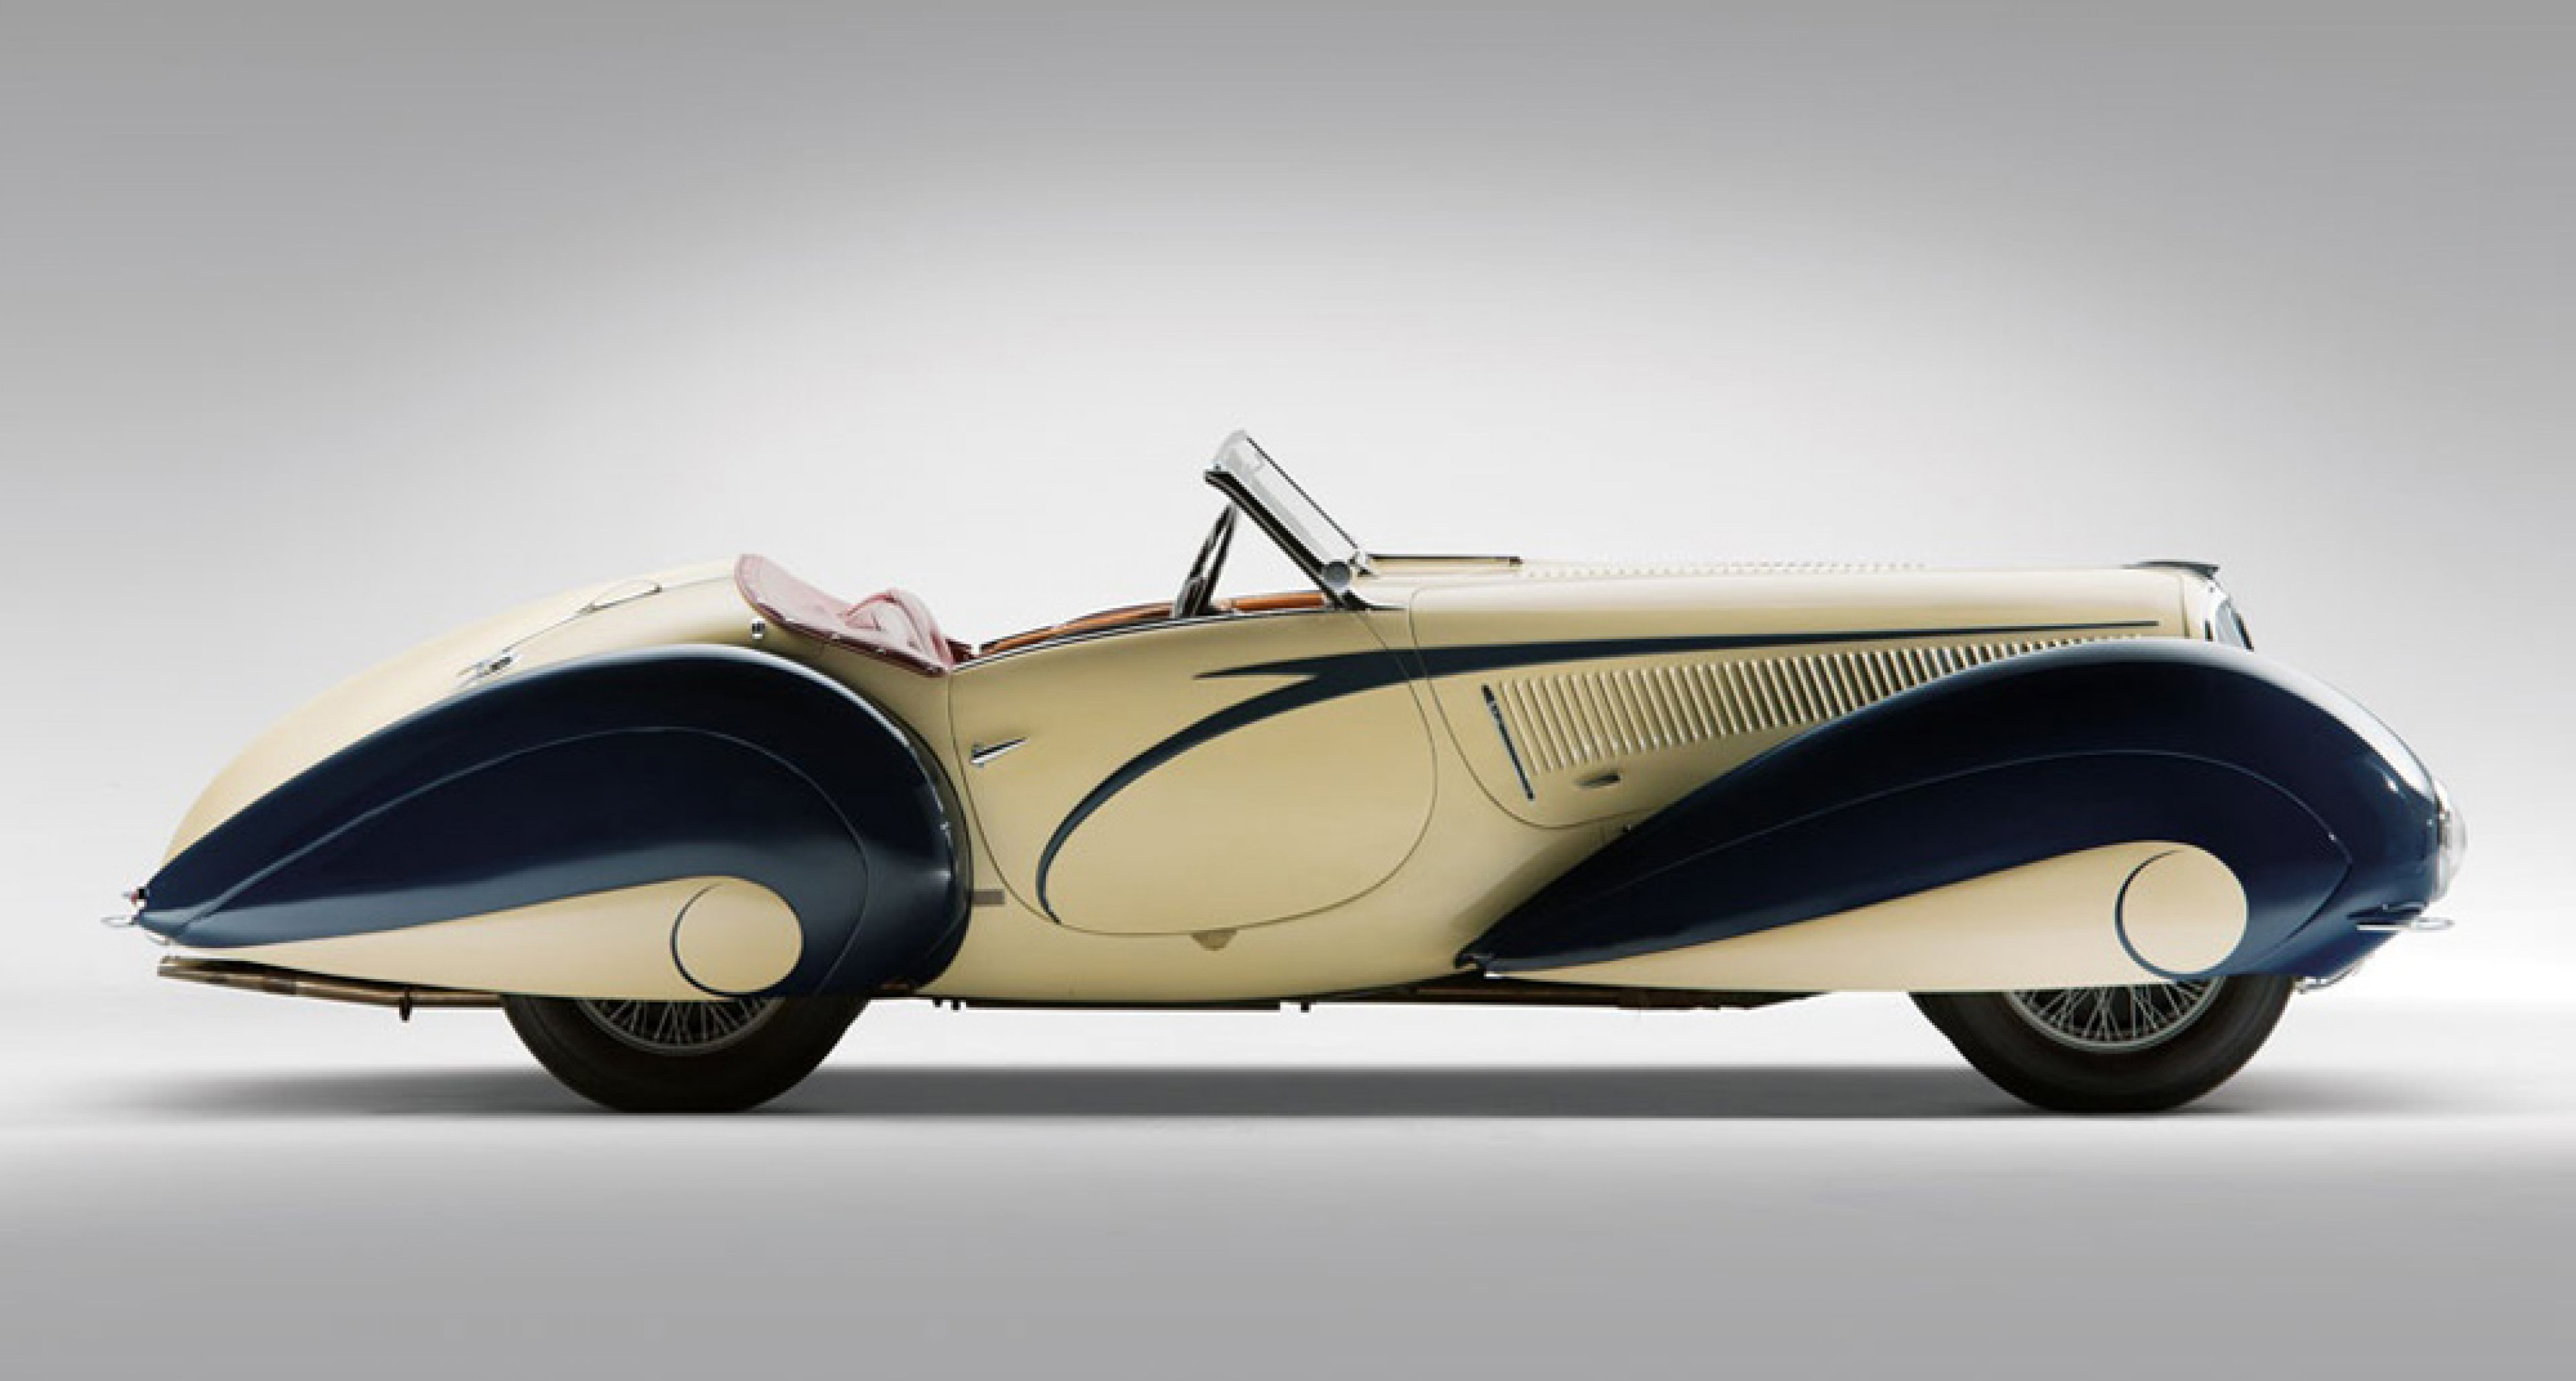 The 1935 Delahaye Torpedo Roadster bodied by Figoni et Falaschi, sold for $6.6m